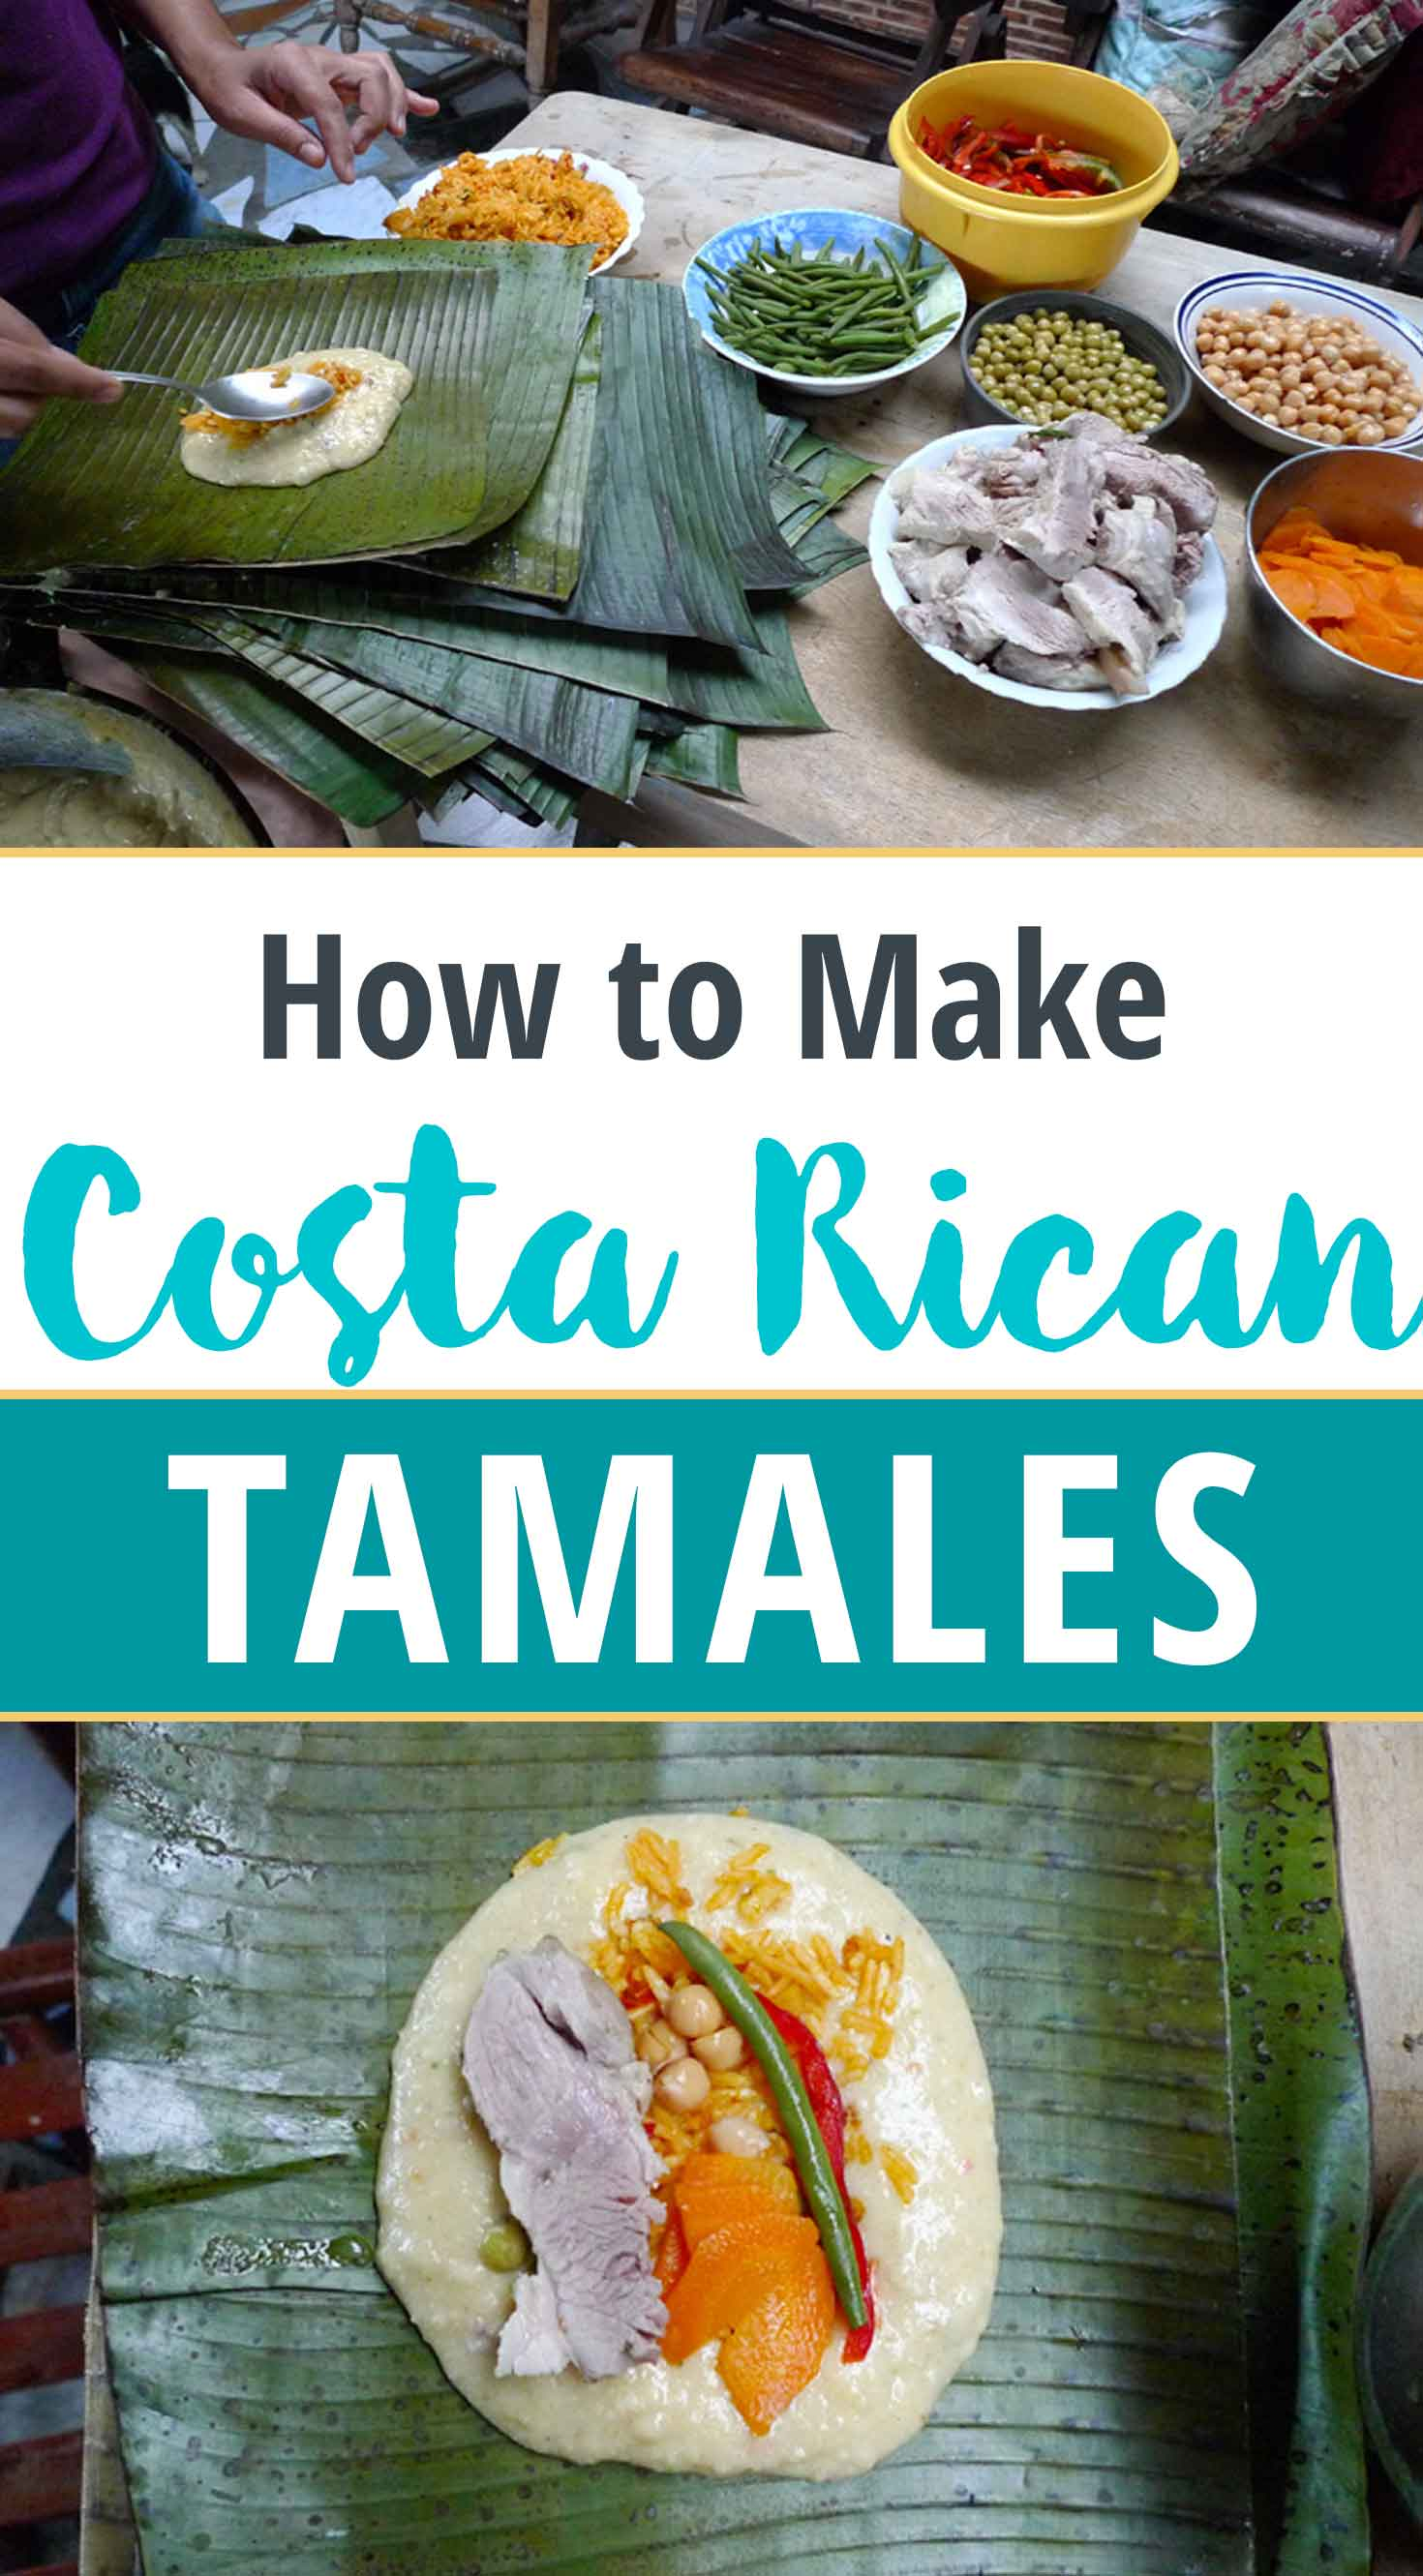 How to Make Costa Rica Christmas Tamales